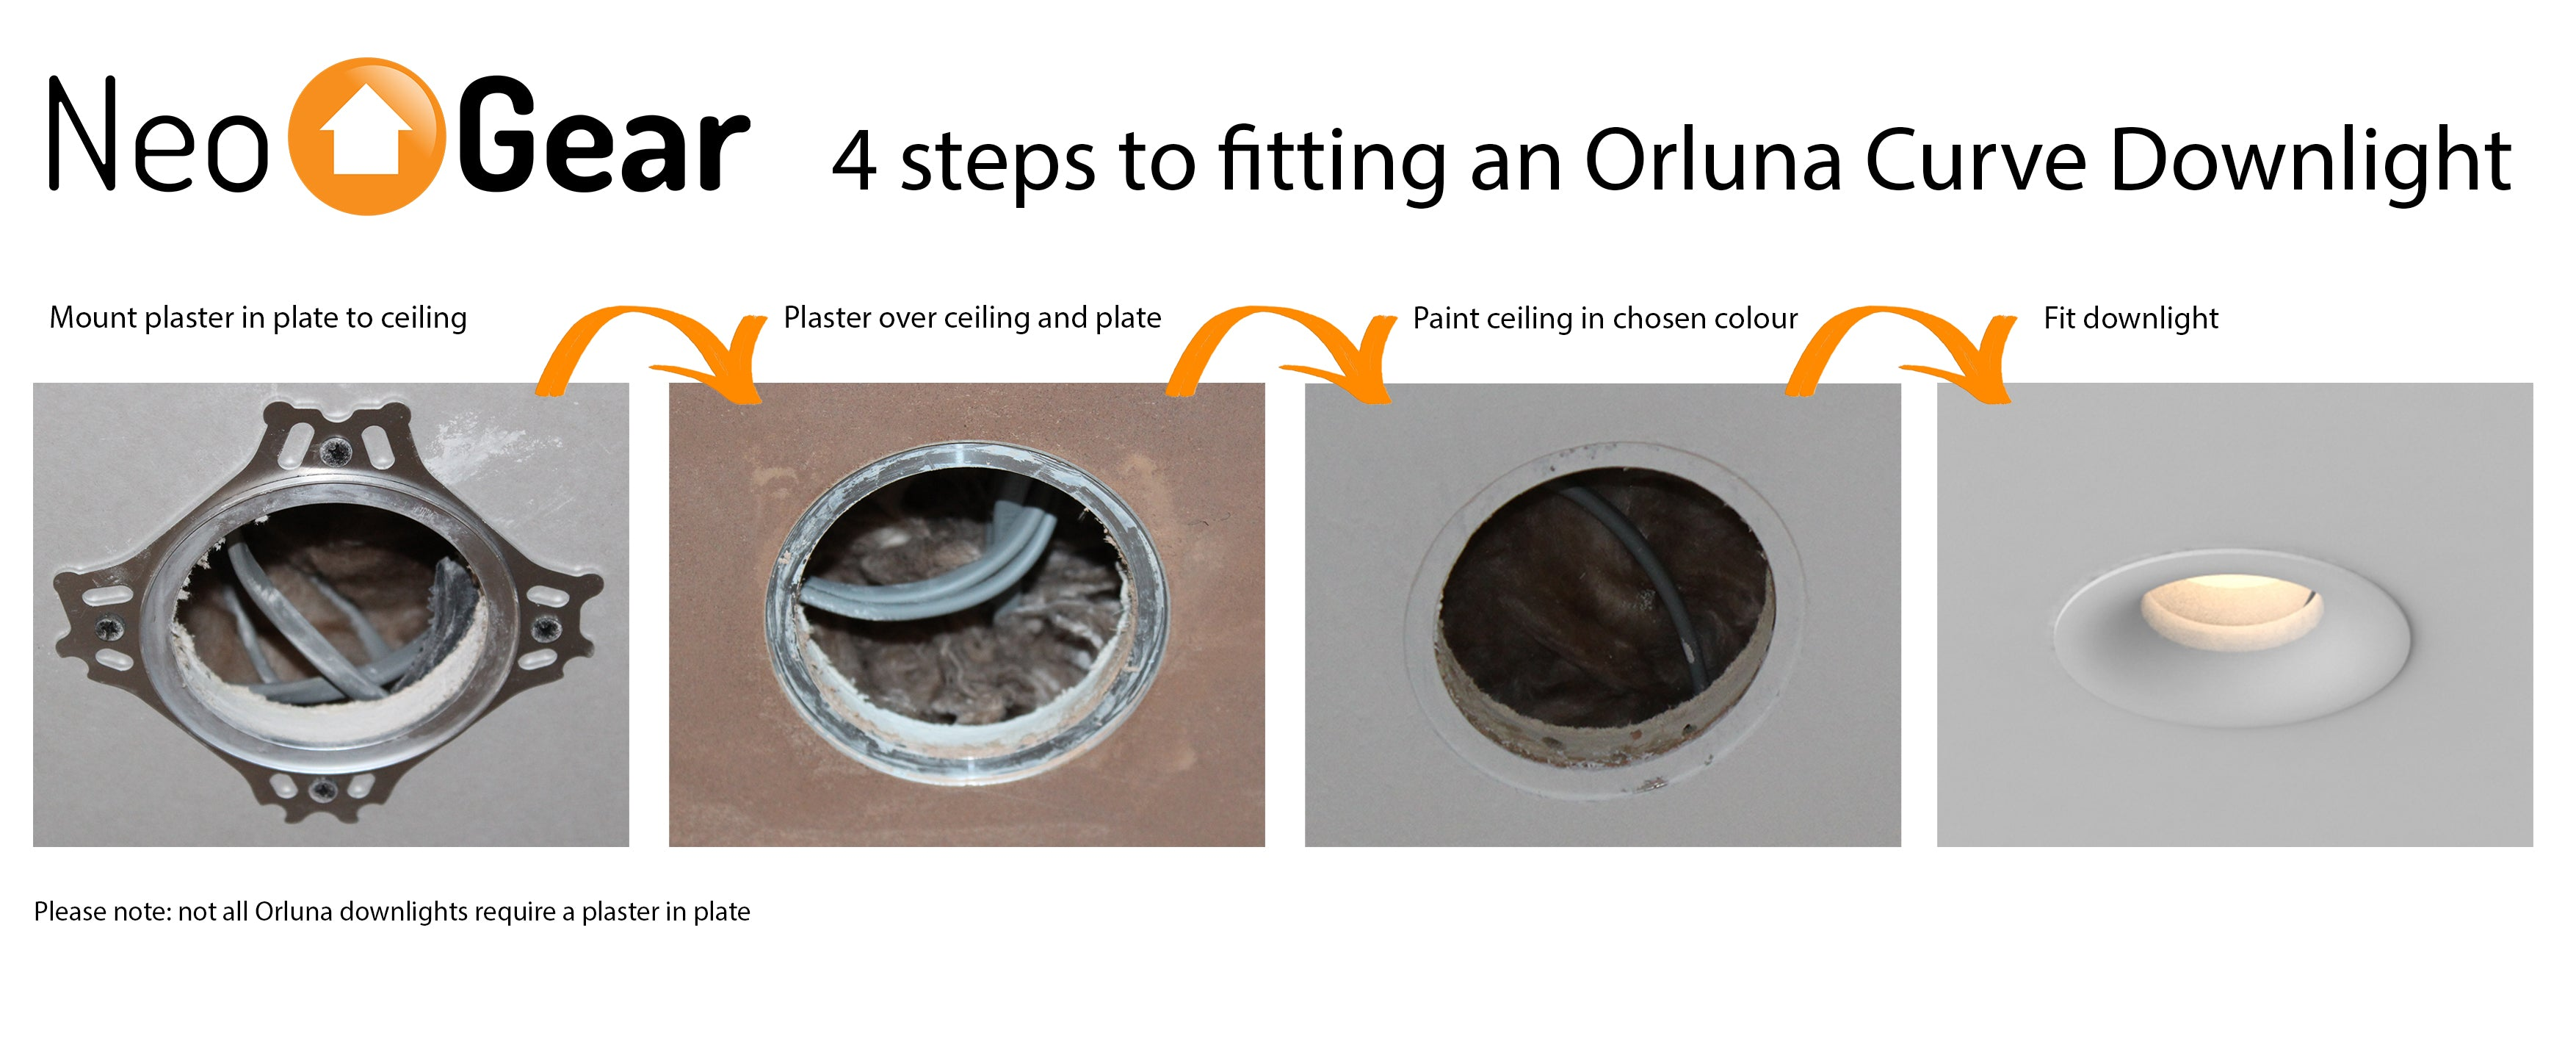 How to fit Orluna light in 4 steps